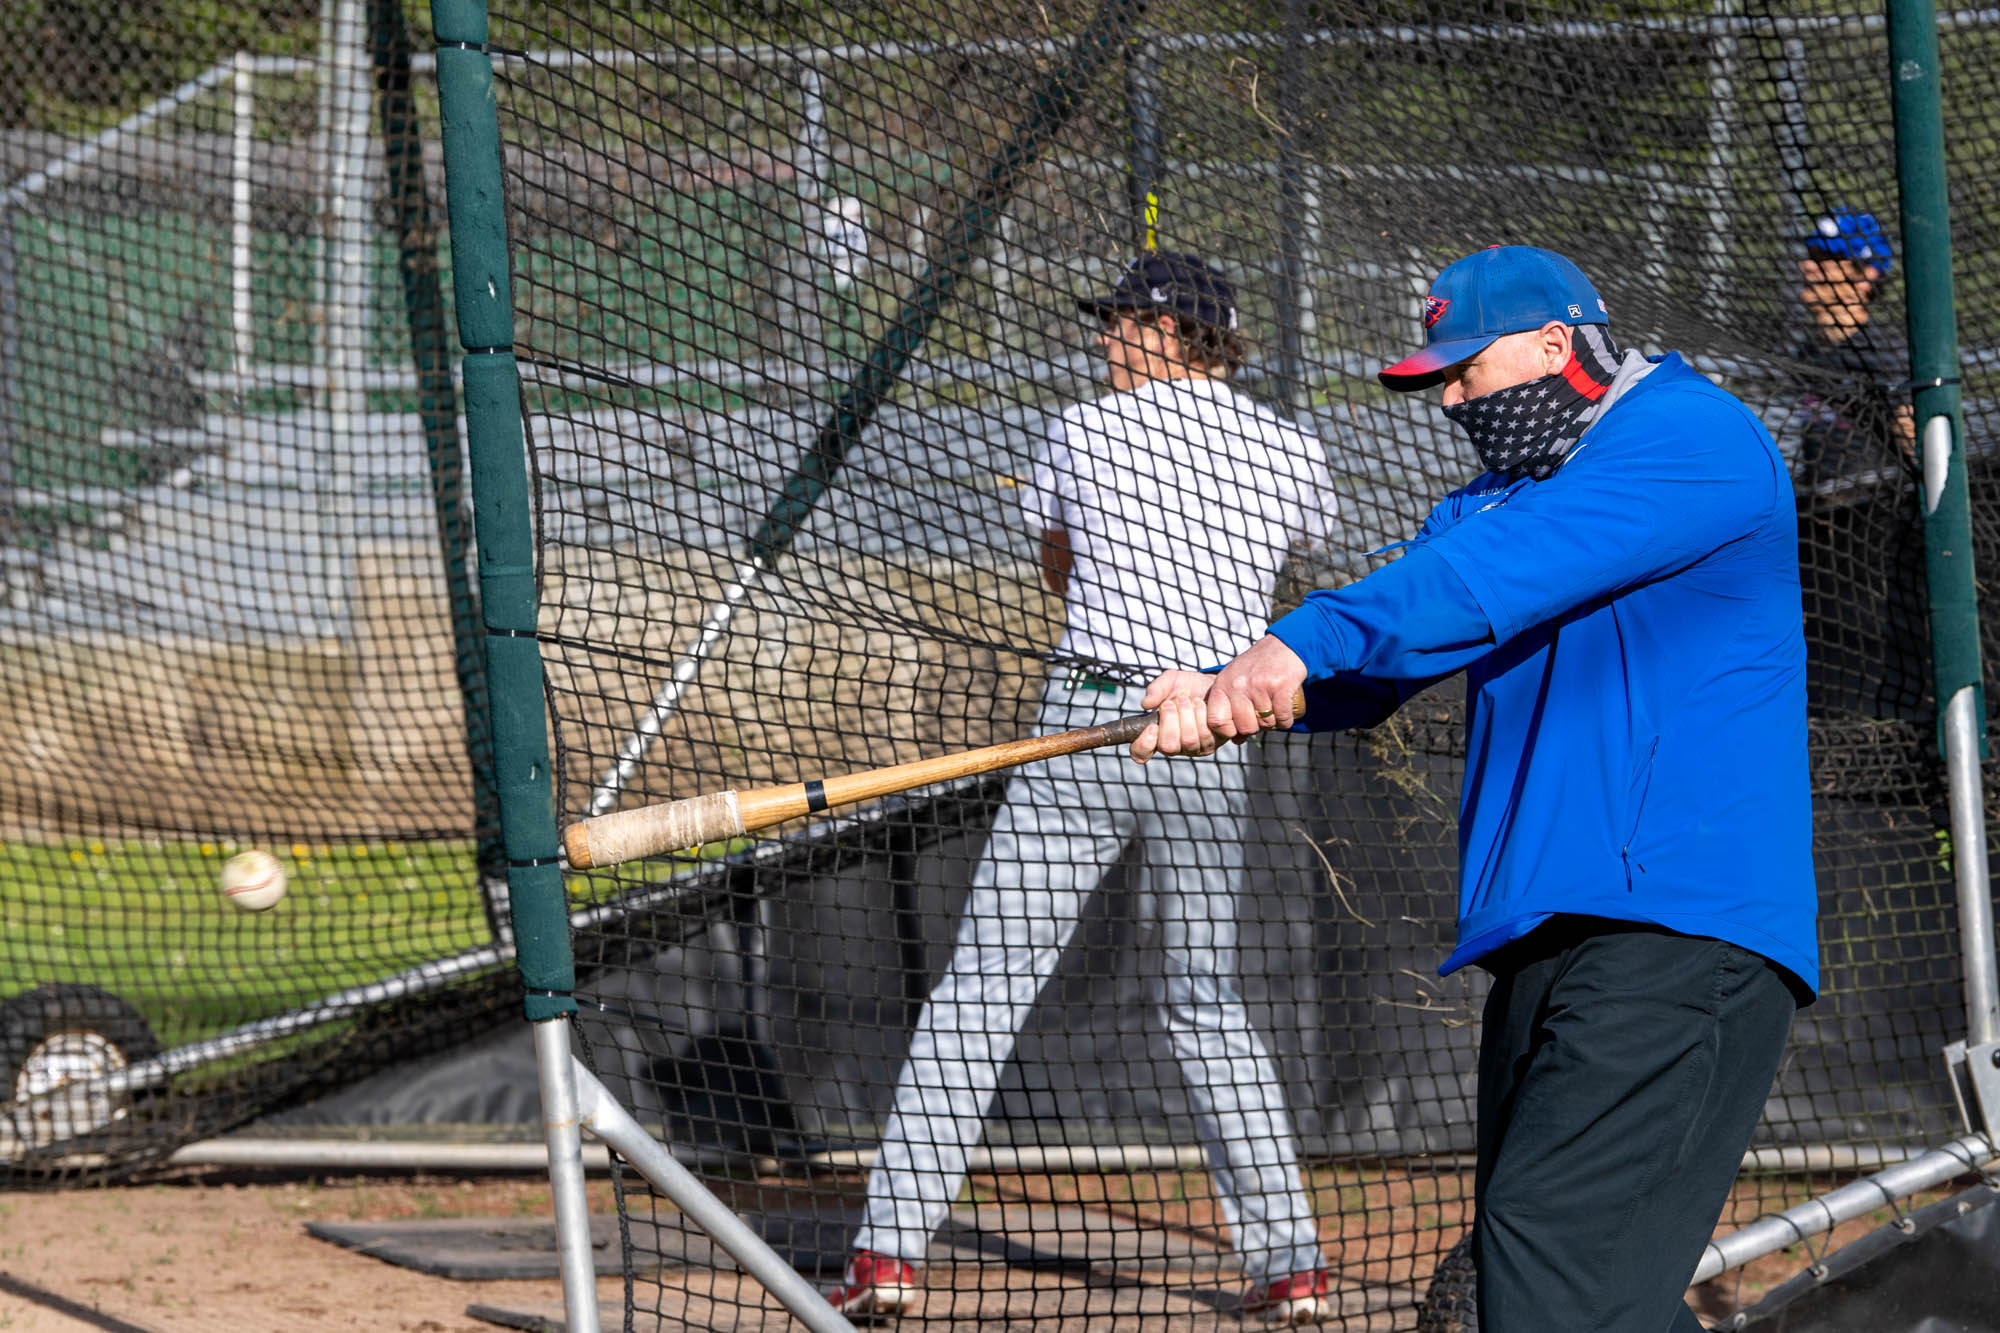 Coach Dan Joyner hits a grounder to the infield during the first day of practice.